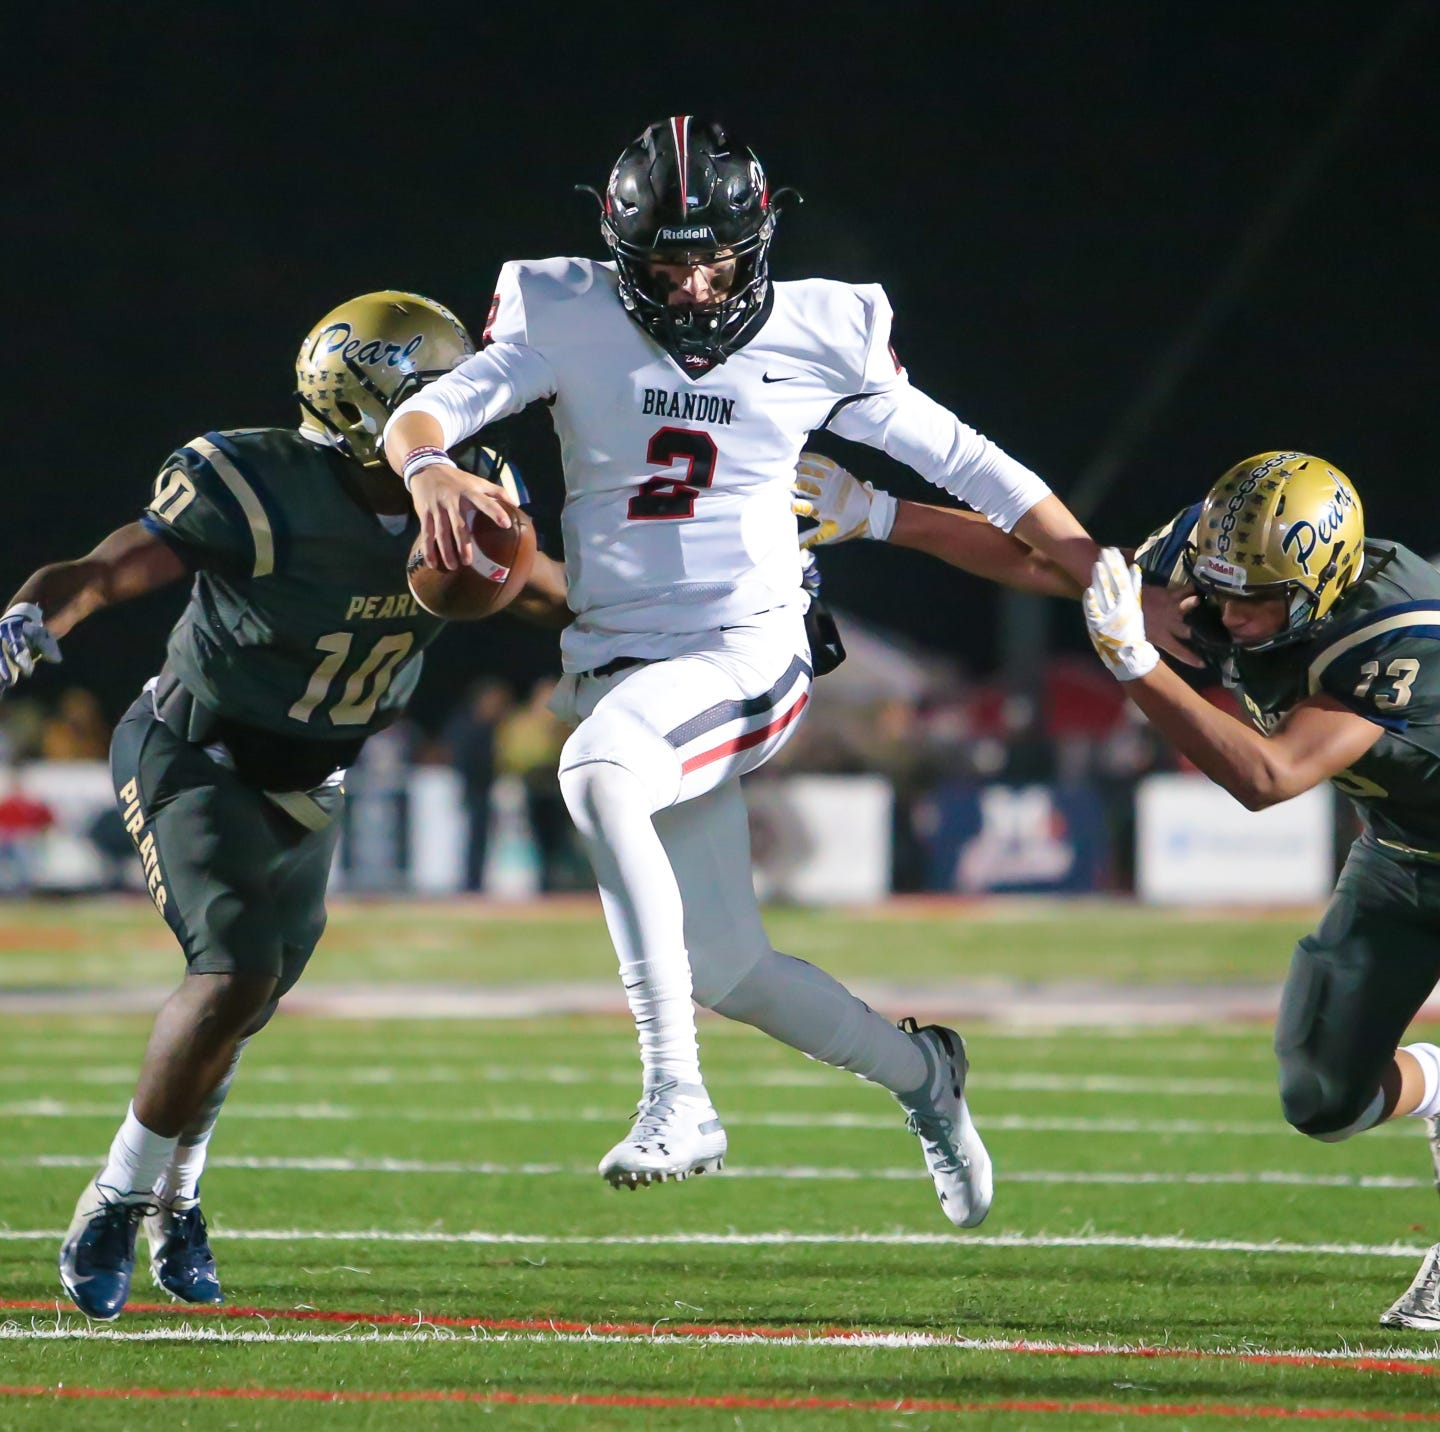 Brandon quarterback Will Rogers commits to Mississippi State